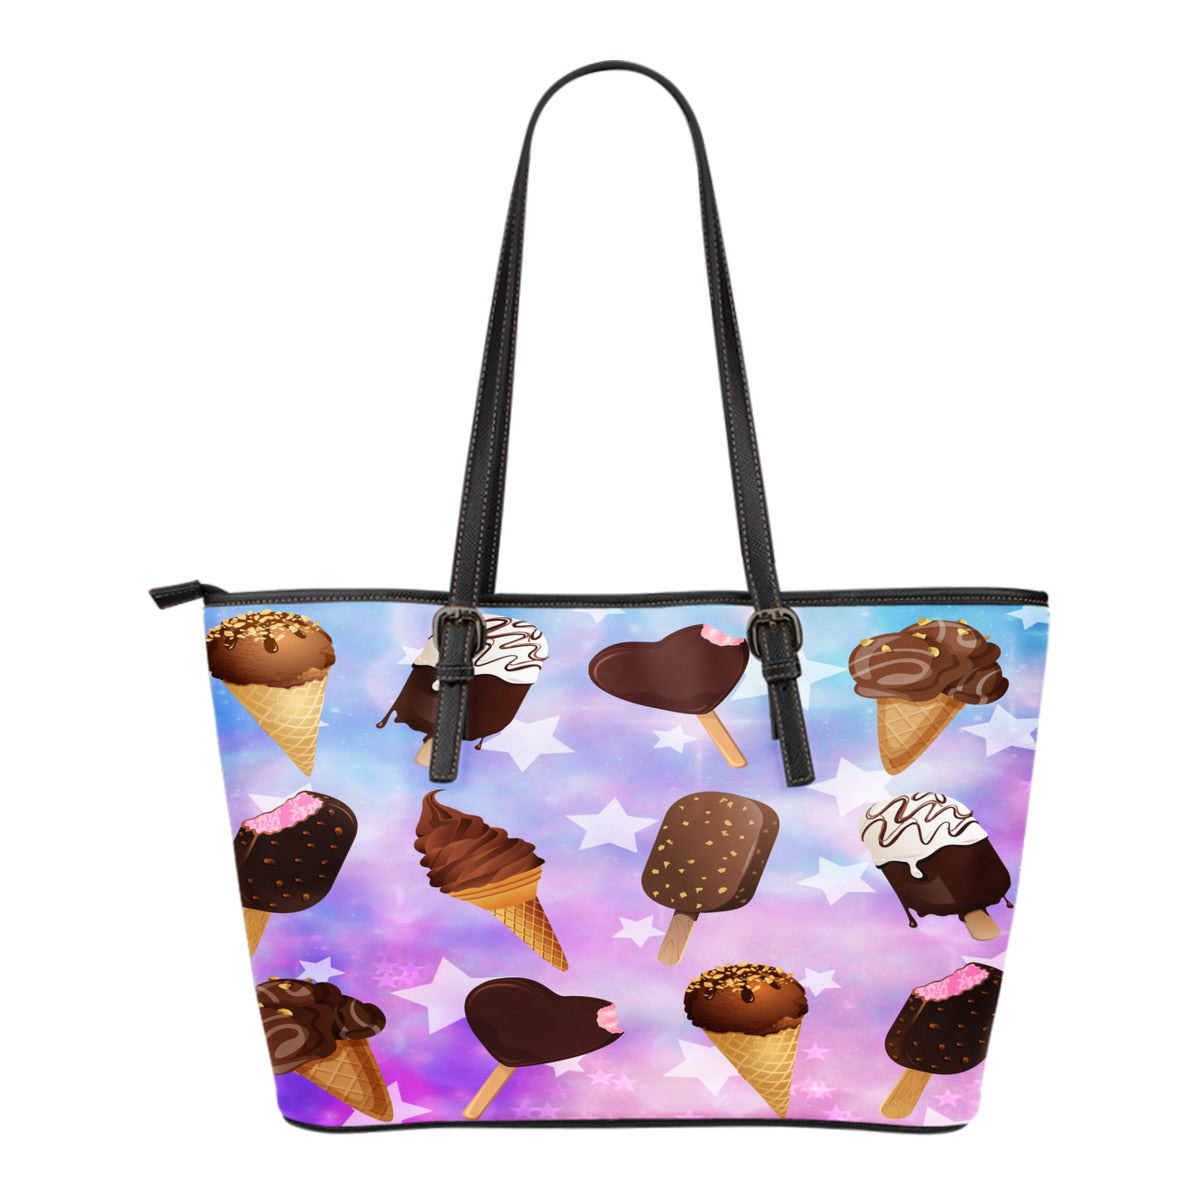 Ice Cream Themed Design C9 Women Small Leather Tote Bag